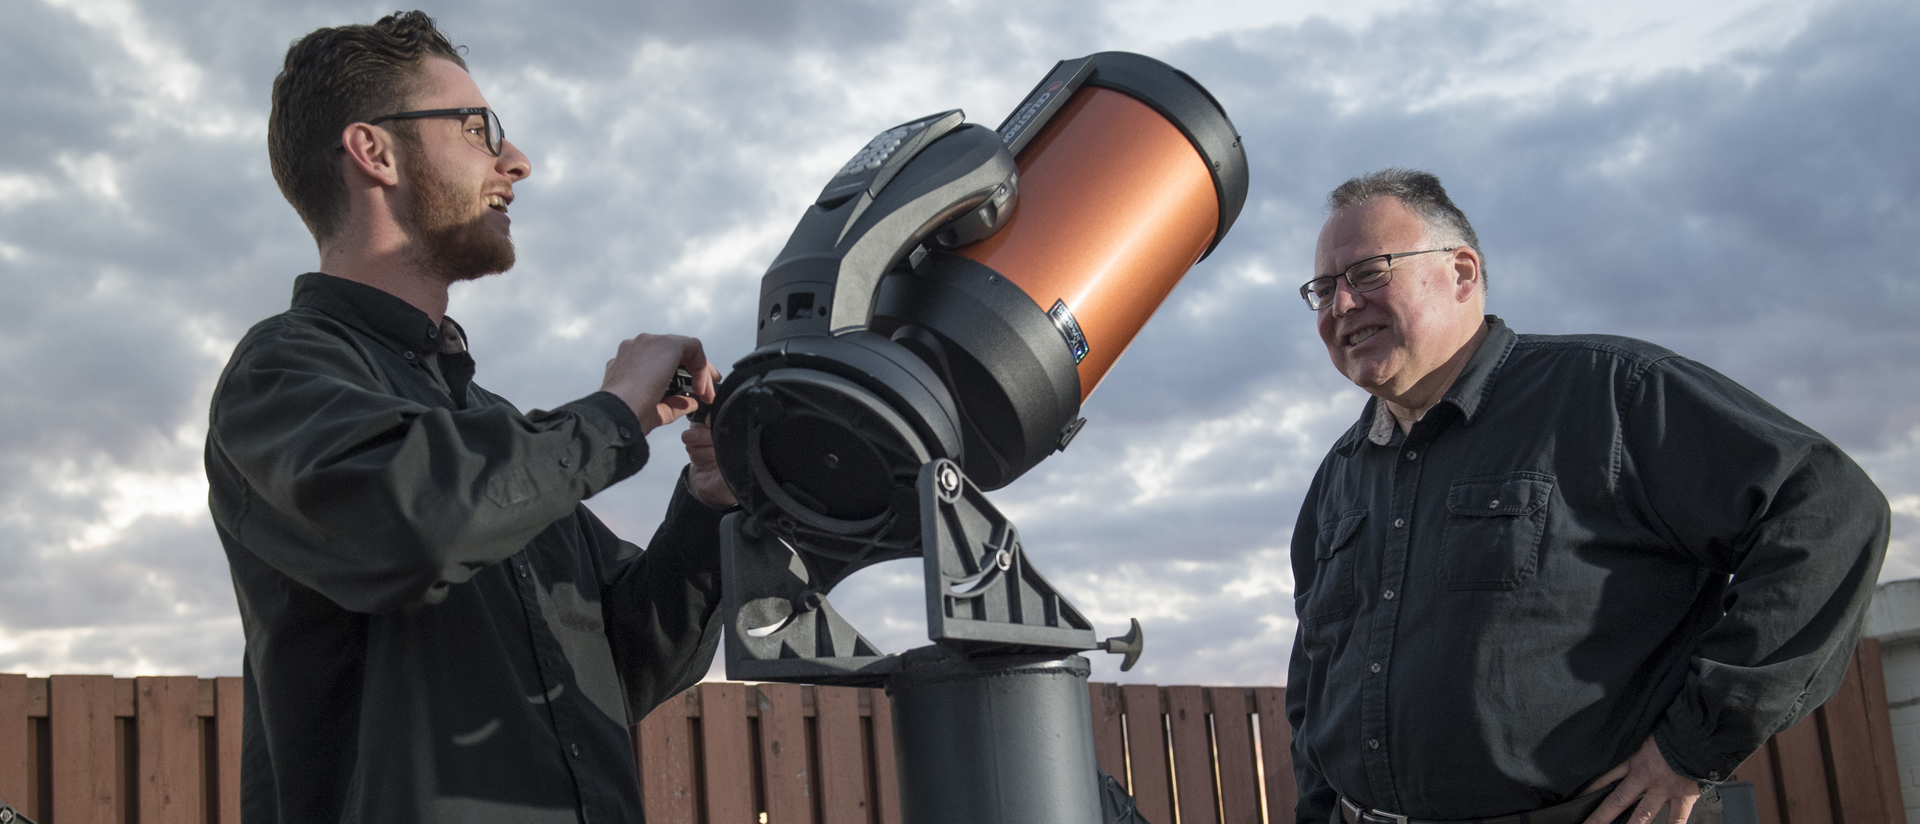 Dr. Paul Thomas (right) will travel to Missouri to experience the Aug. 21 total solar eclipse. UW-Eau Claire will host a viewing event on campus, helping people safely view the partial eclipse.